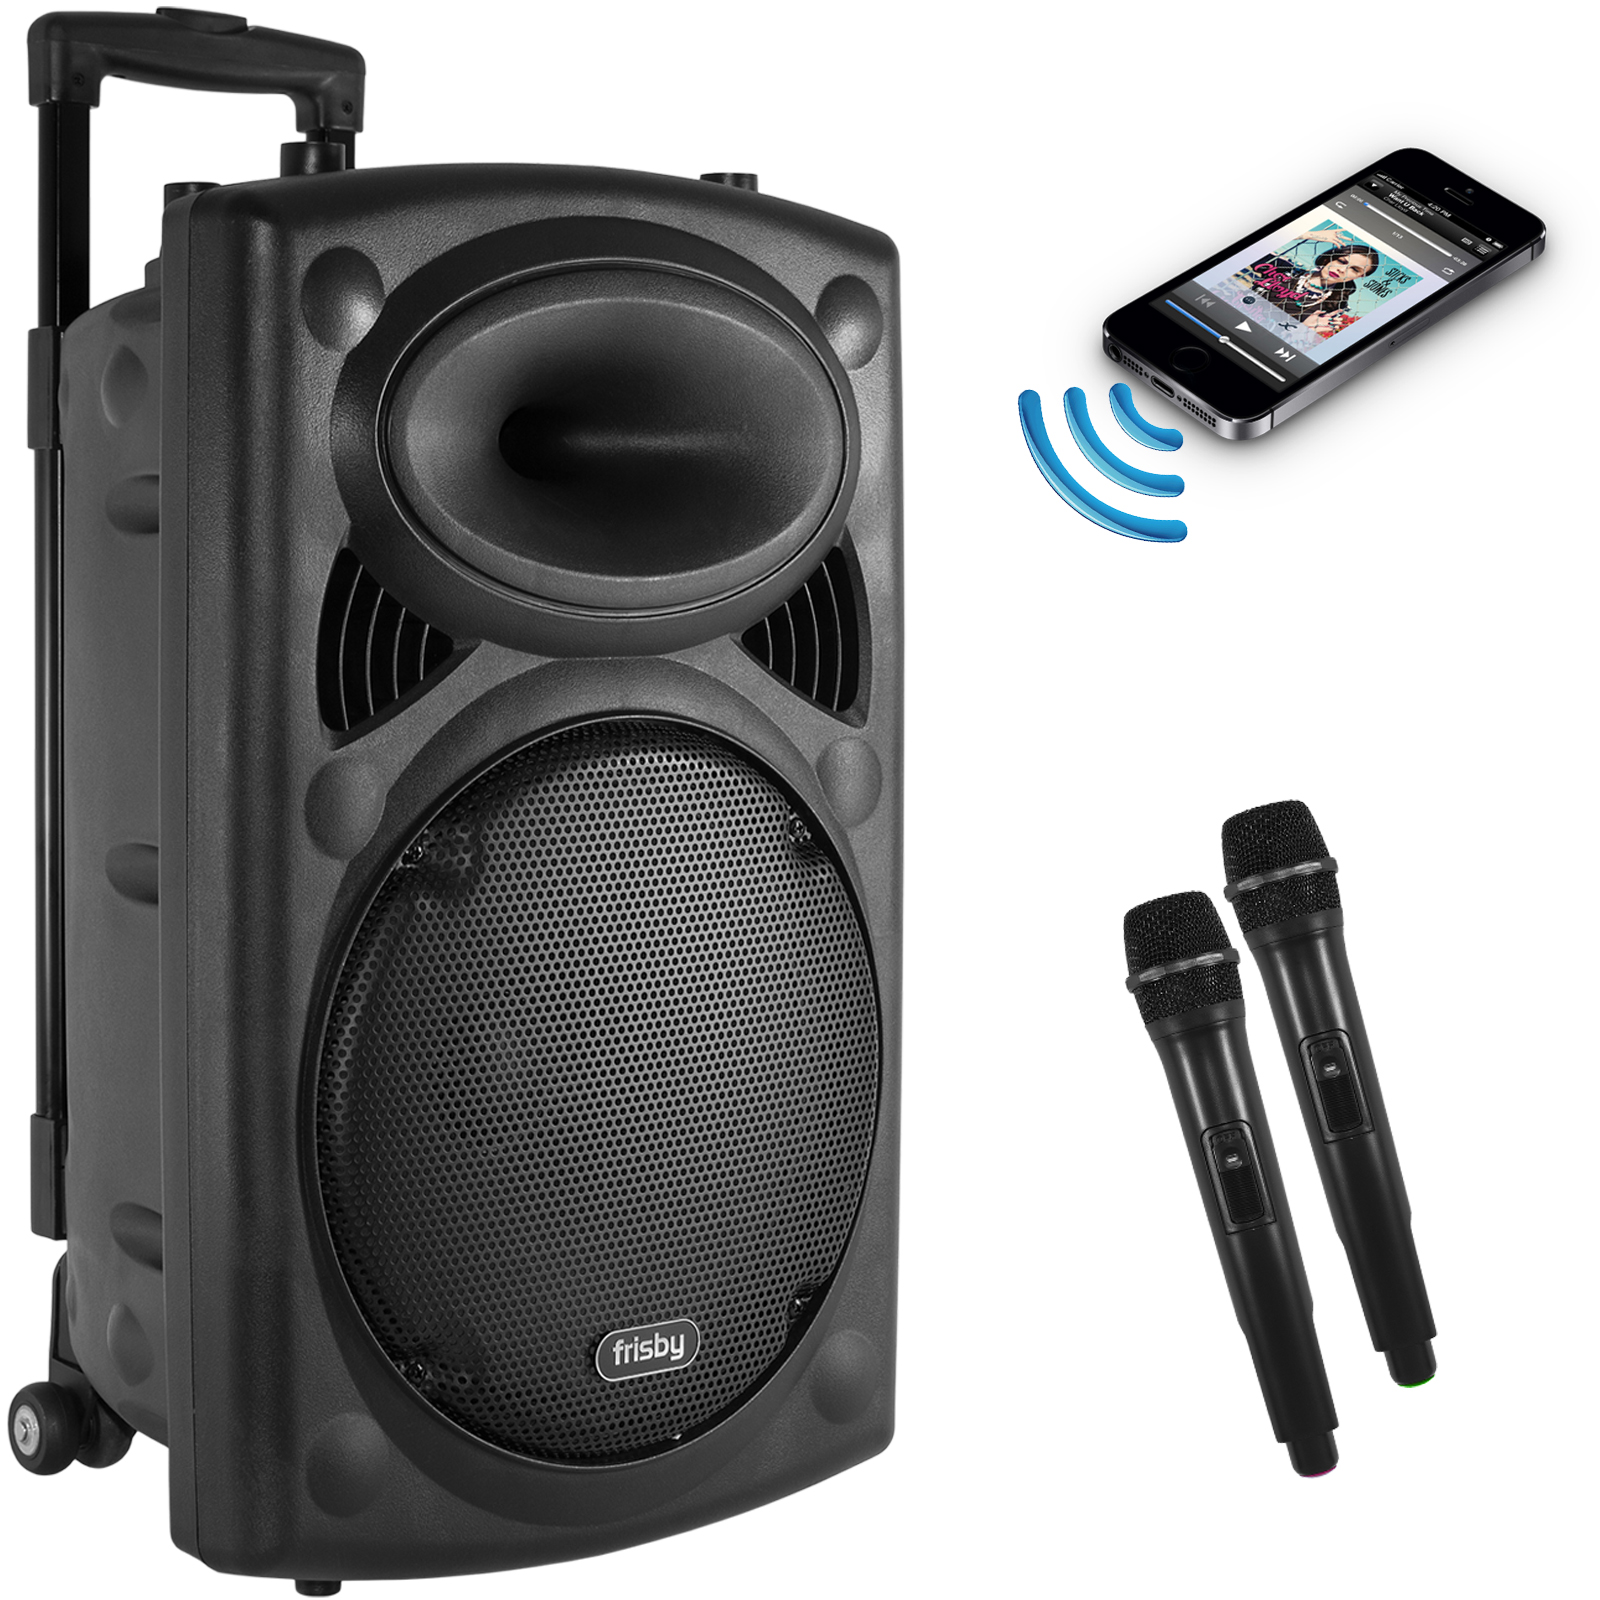 Frisby FS-4050P Portable Rechargeable Bluetooth Karaoke Machine PA Speaker System w/ Telescoping Handle & Wheels w/ 2 Wireless Microphones, FM Radio, USB SD Slots for Parties & Events